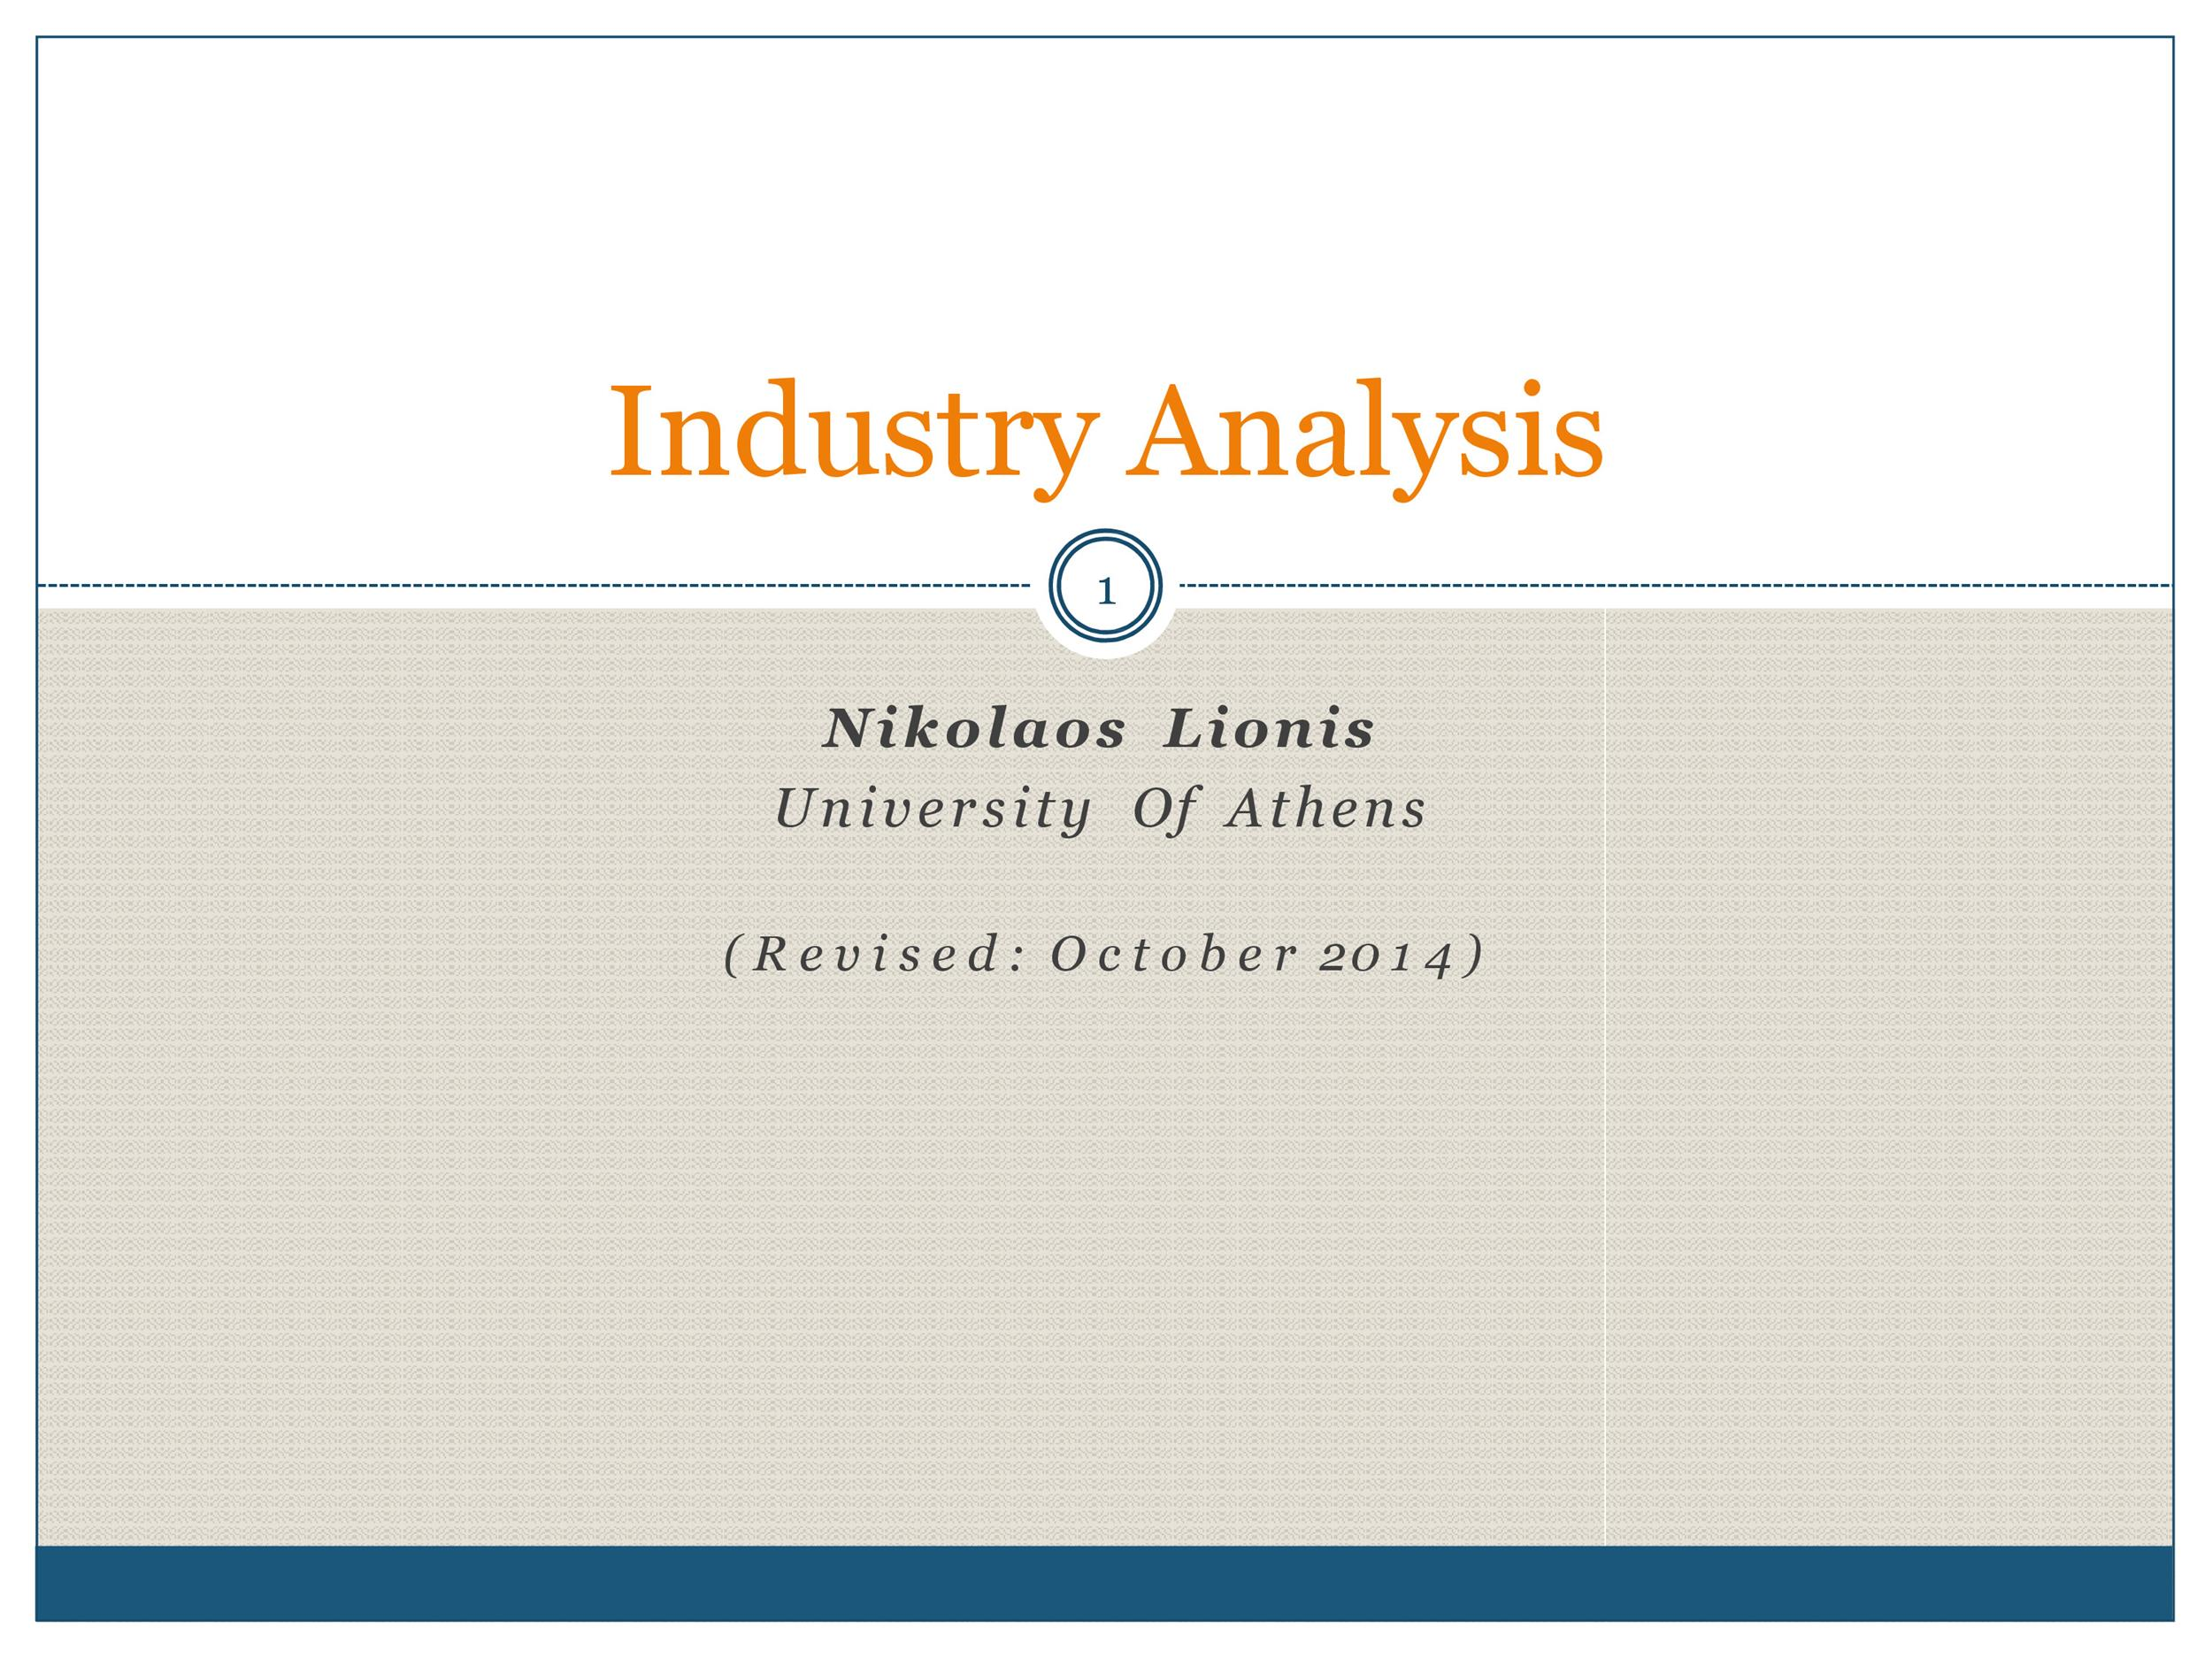 Free industry analysis example 07